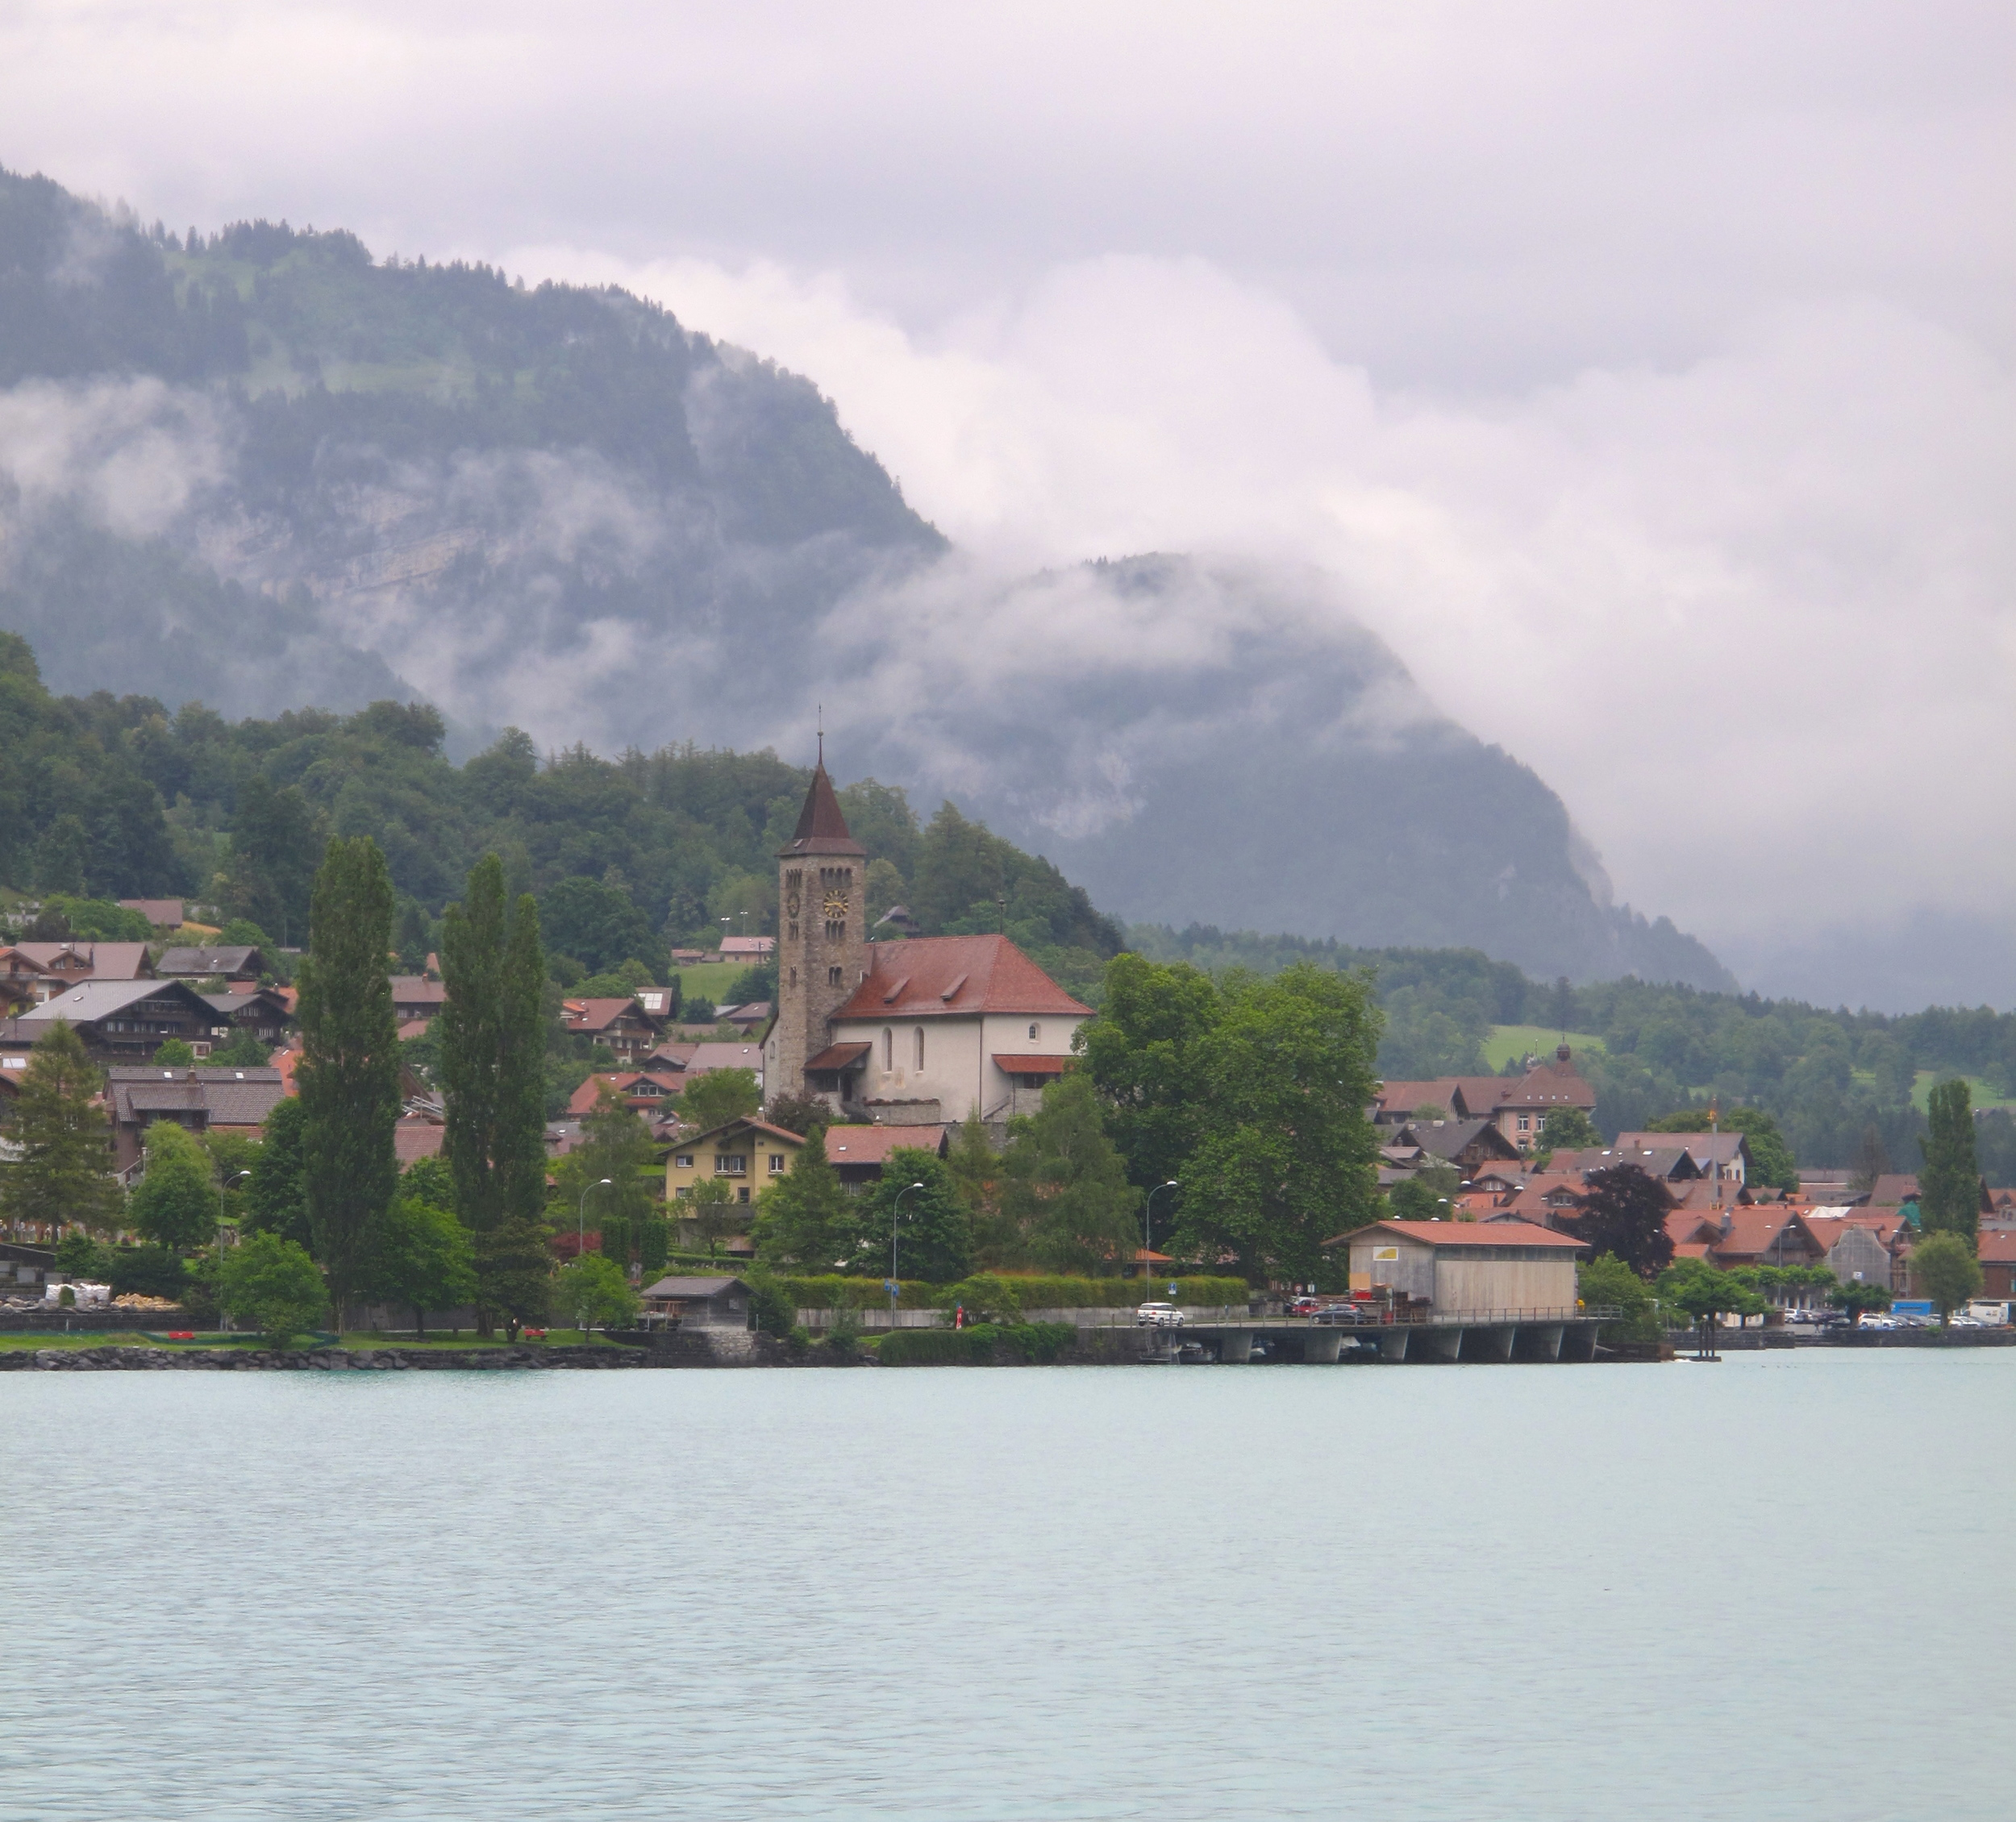 A lake and a small village in Switzerland